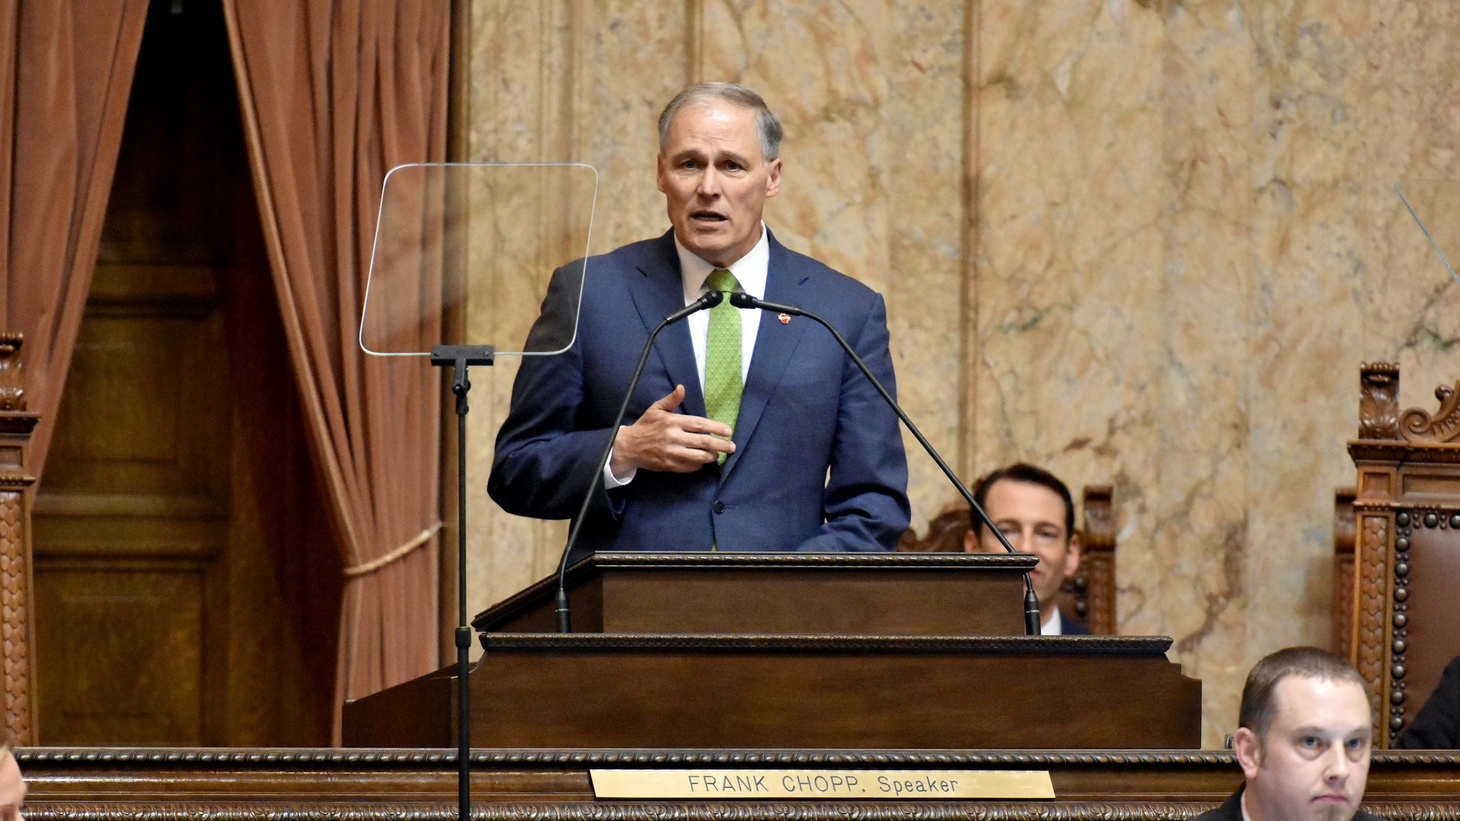 Gov. Jay Inslee delivered his 2019 State of the State address to a joint session of the Washington State Senate and House of Representatives. He implored legislators to write a historic new chapter in Washington's story that demonstrates bold purpose in acting on climate change, transforming the state's behavioral health system, protecting the embattled Southern Resident orca population, and continuing important investments in education.